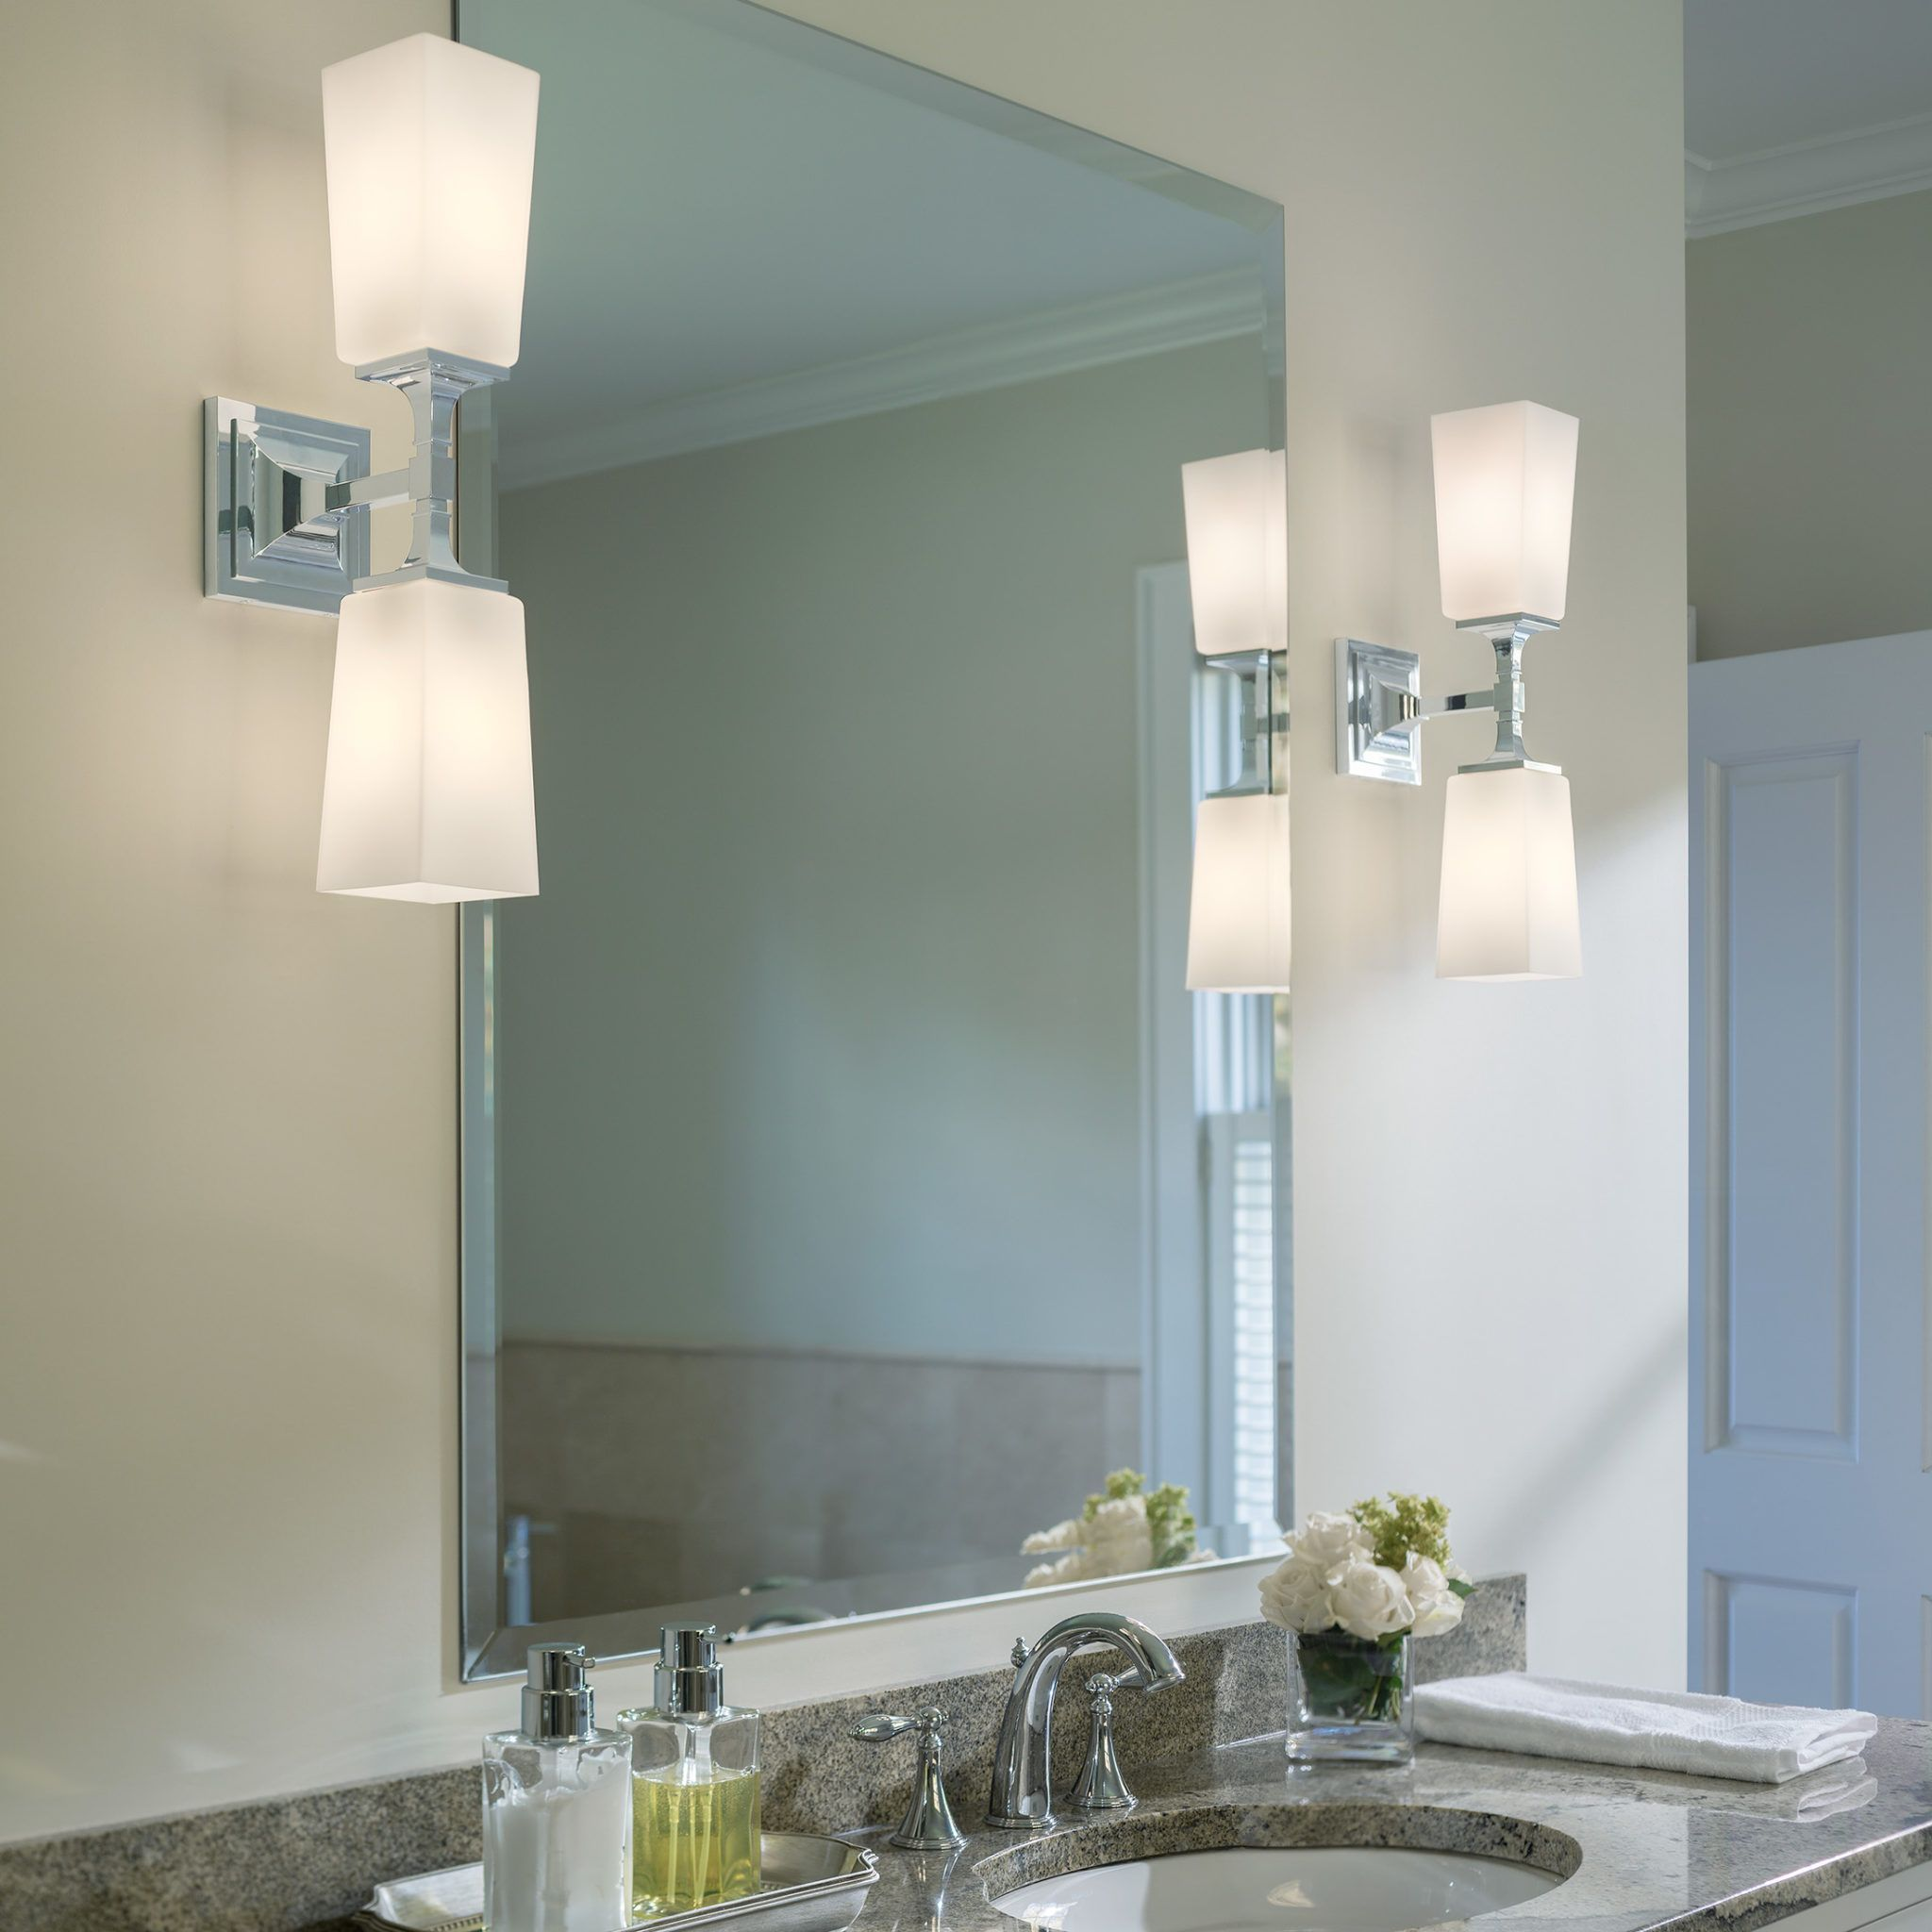 Best Height For Your Bathroom Wall Sconce I Capitol Lighting In 2021 Bathroom Wall Sconces Bathroom Sconces Modern Bathroom Vanity Lighting